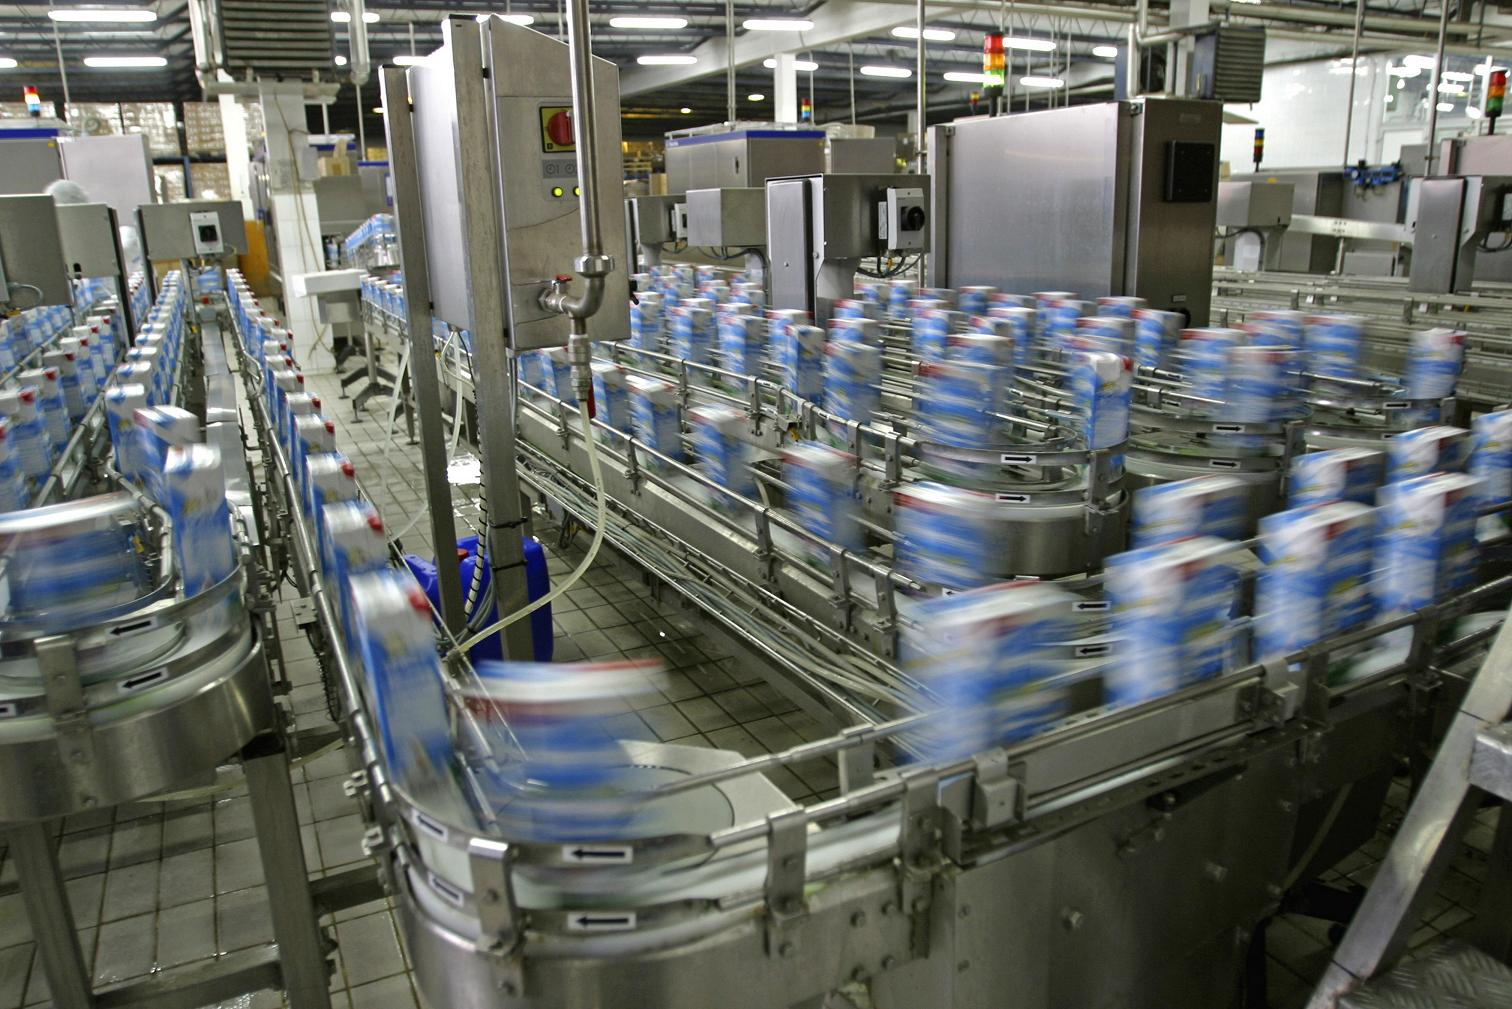 highly automated production environment